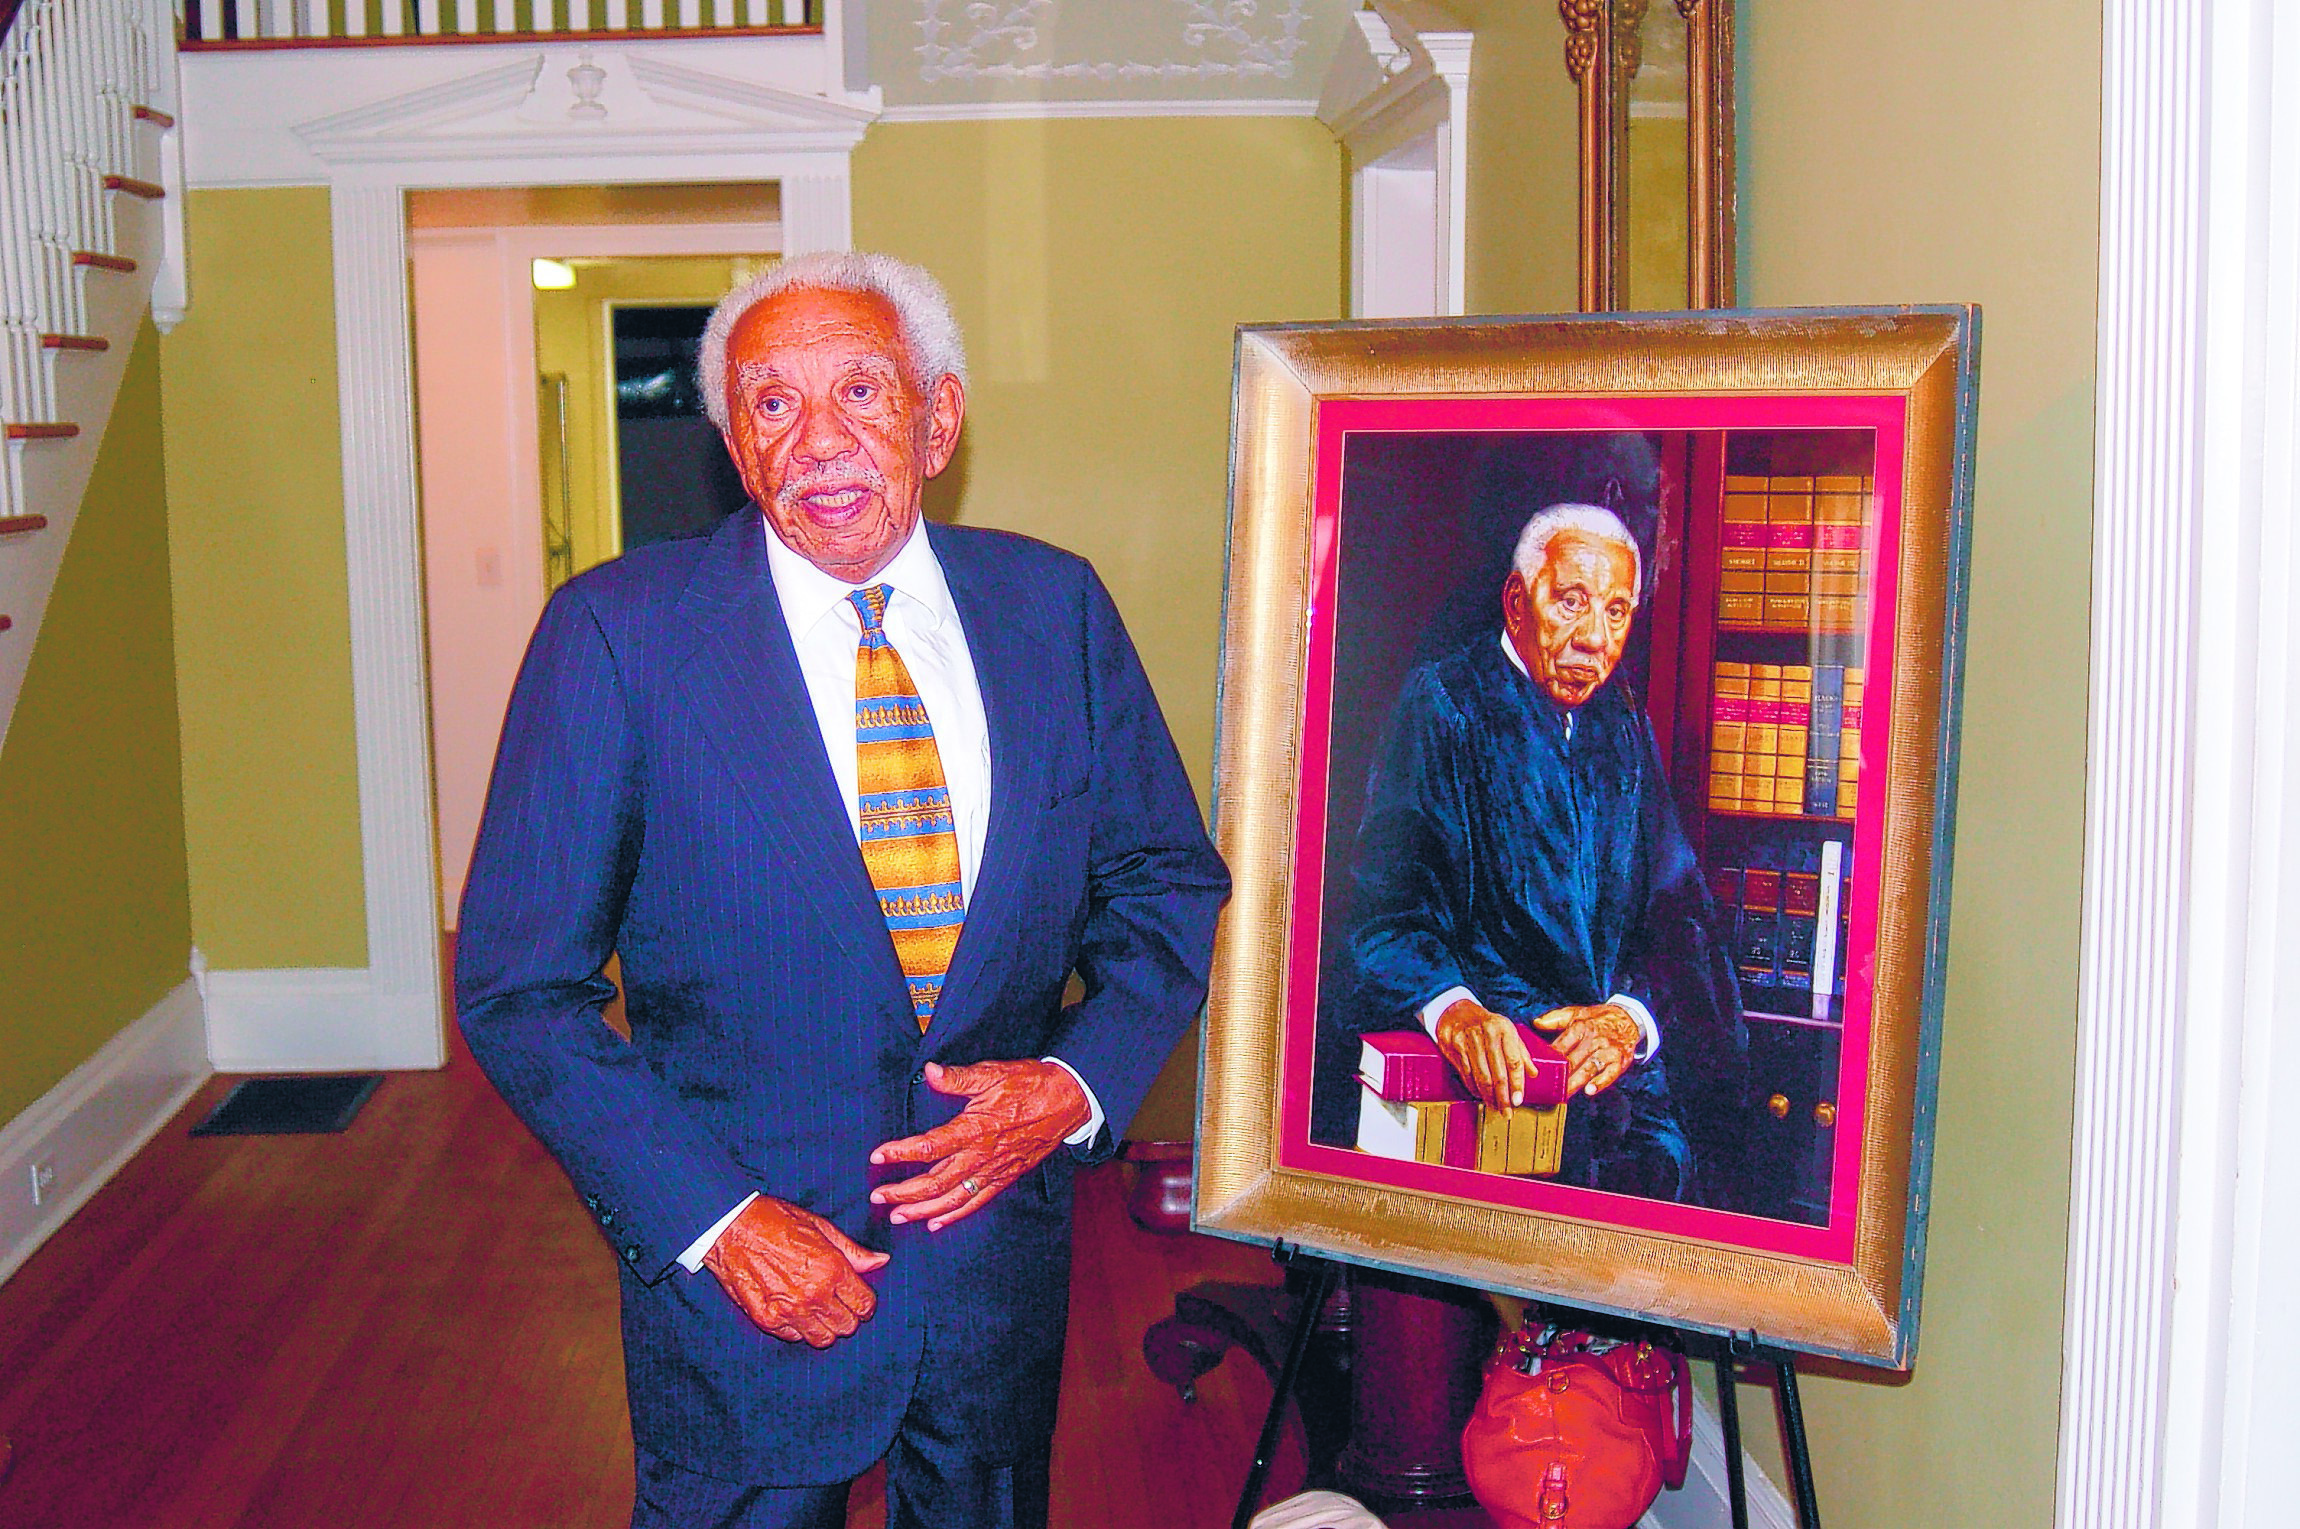 Long associated with the Civil Rights Movement in South Carolina, former state Supreme Court Chief justice and longtime Sumter resident Ernest A. Finney Jr. was honored in 2012 with the naming of the Ernest A. Finney Jr. Civil Rights Museum in Columbia.